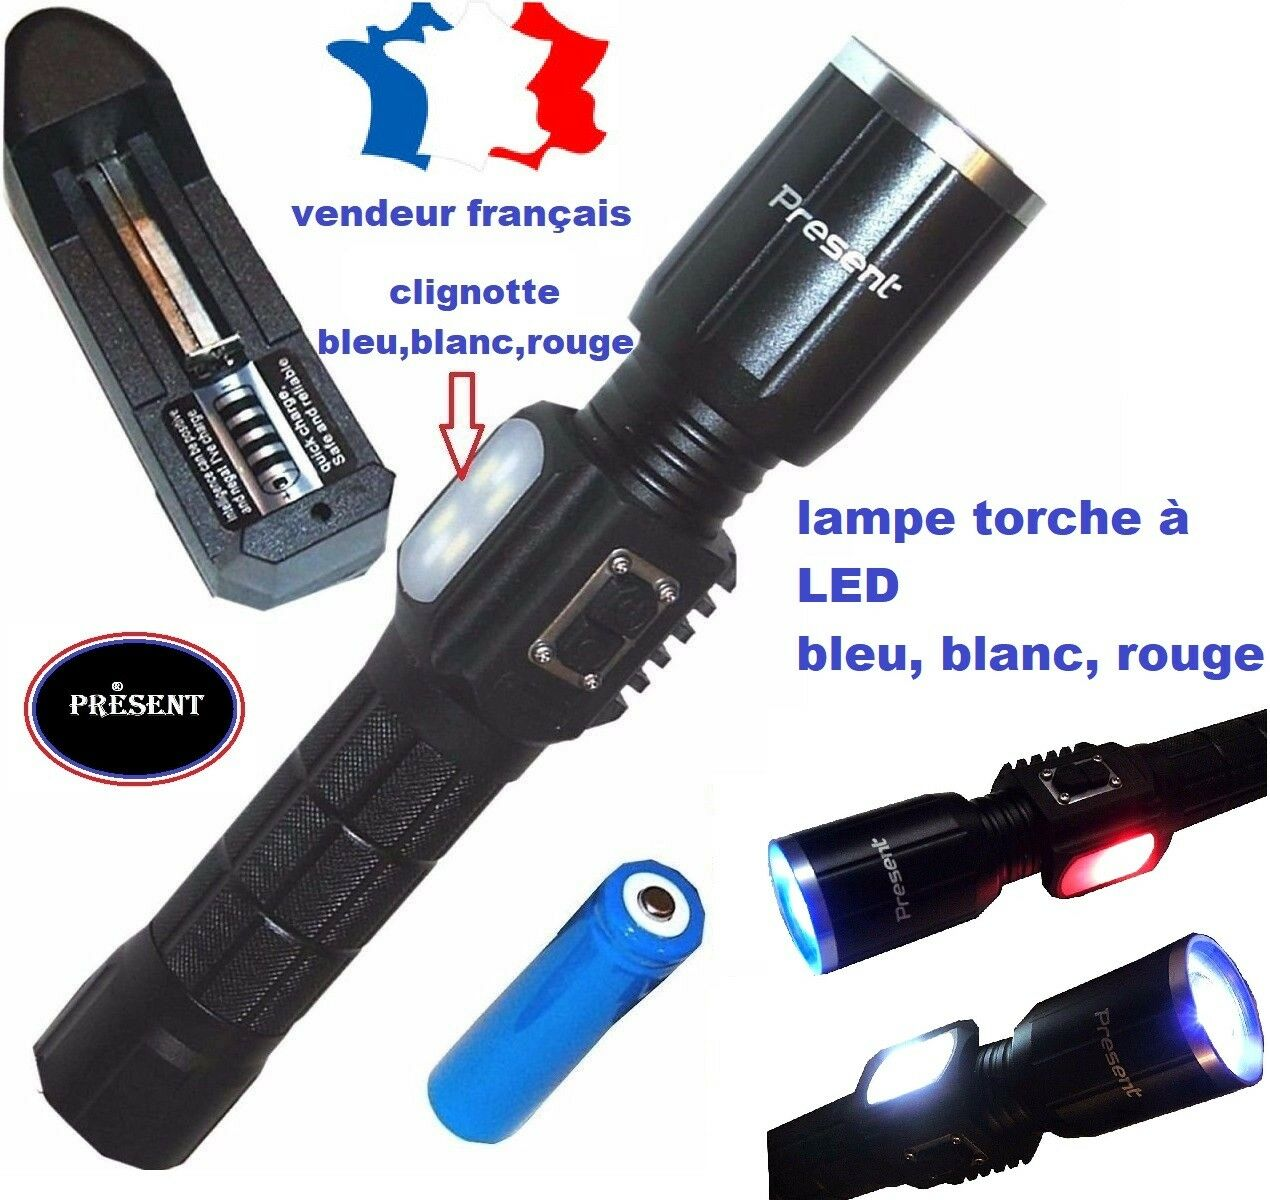 lampe torche rechargeable usb led bleu blanc rouge eur. Black Bedroom Furniture Sets. Home Design Ideas